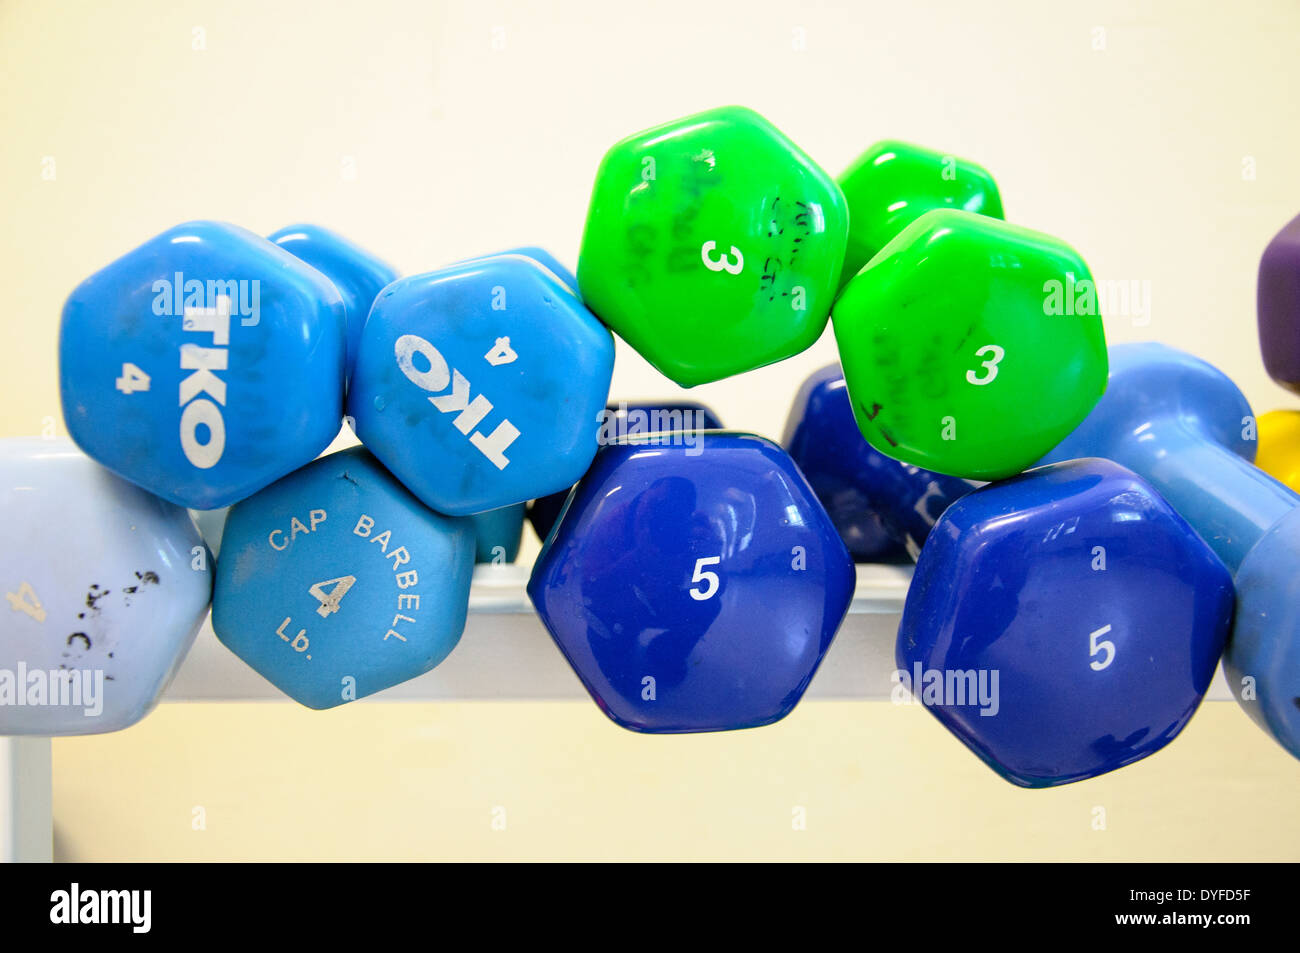 Assorted weights, exercise equipment. - Stock Image